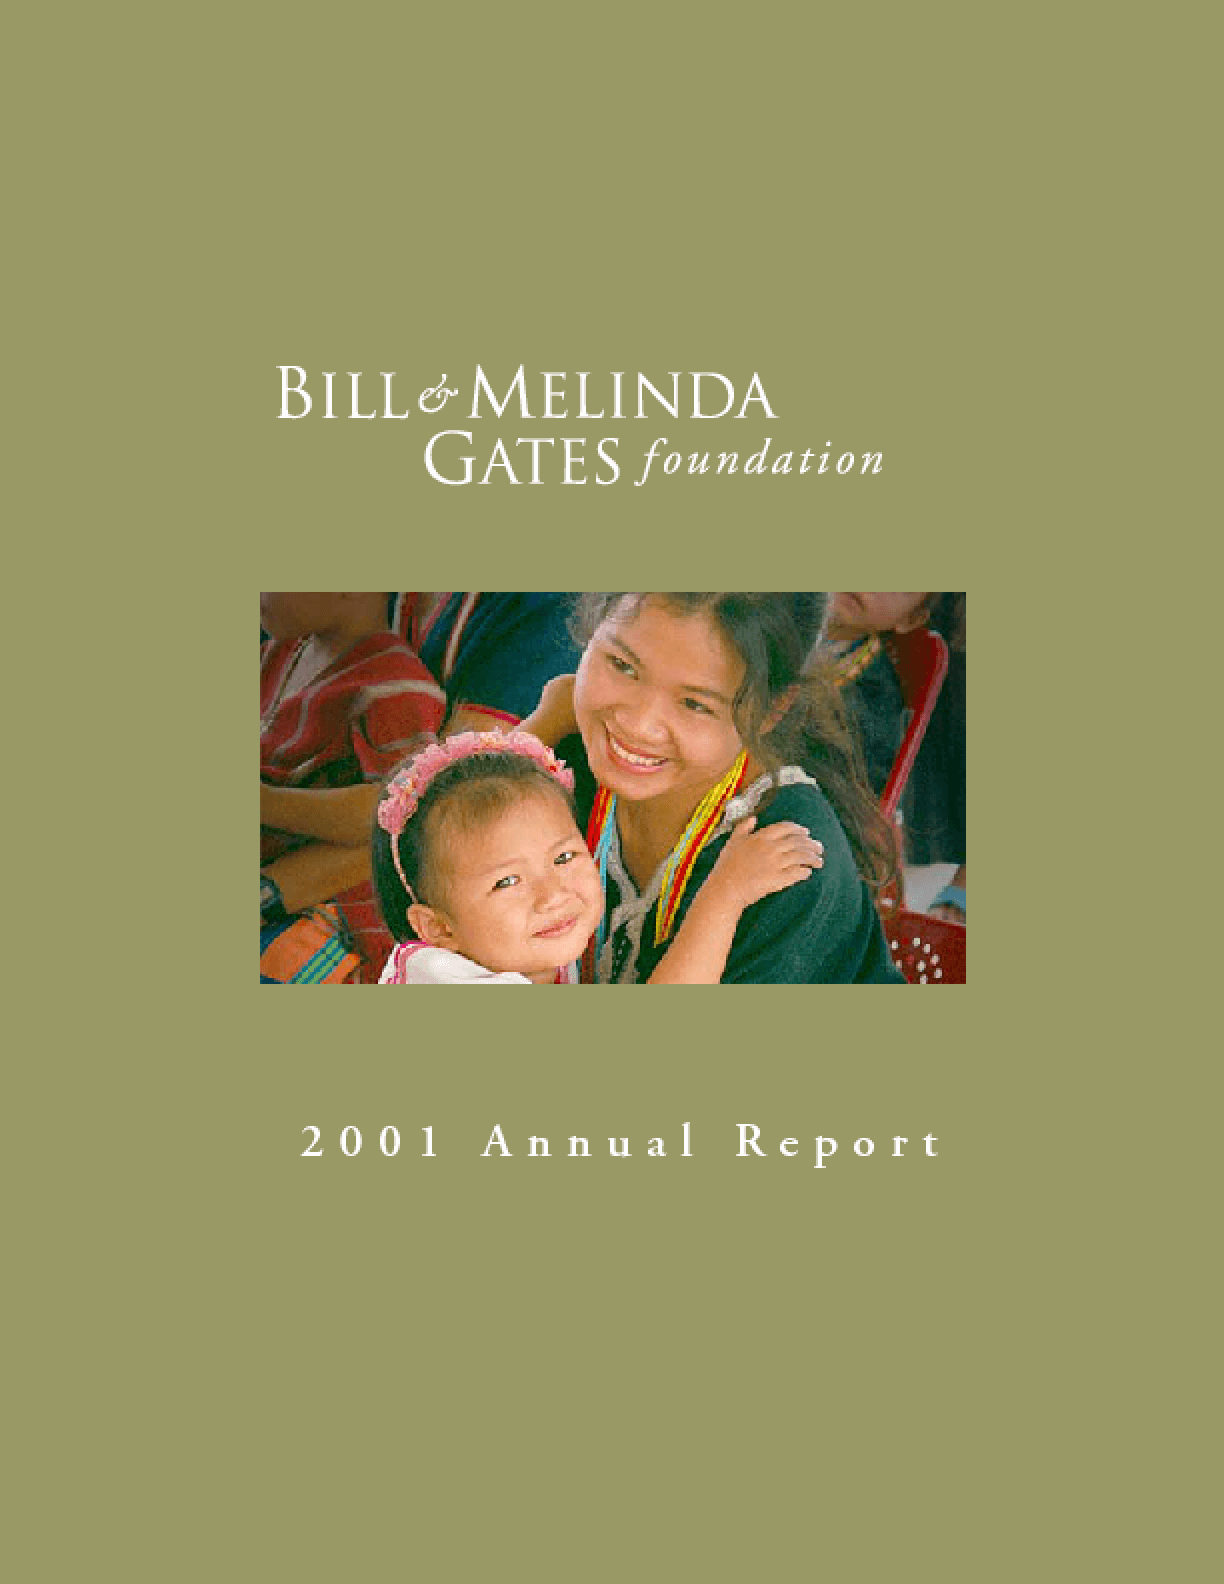 Bill & Melinda Gates Foundation - 2001 Annual Report